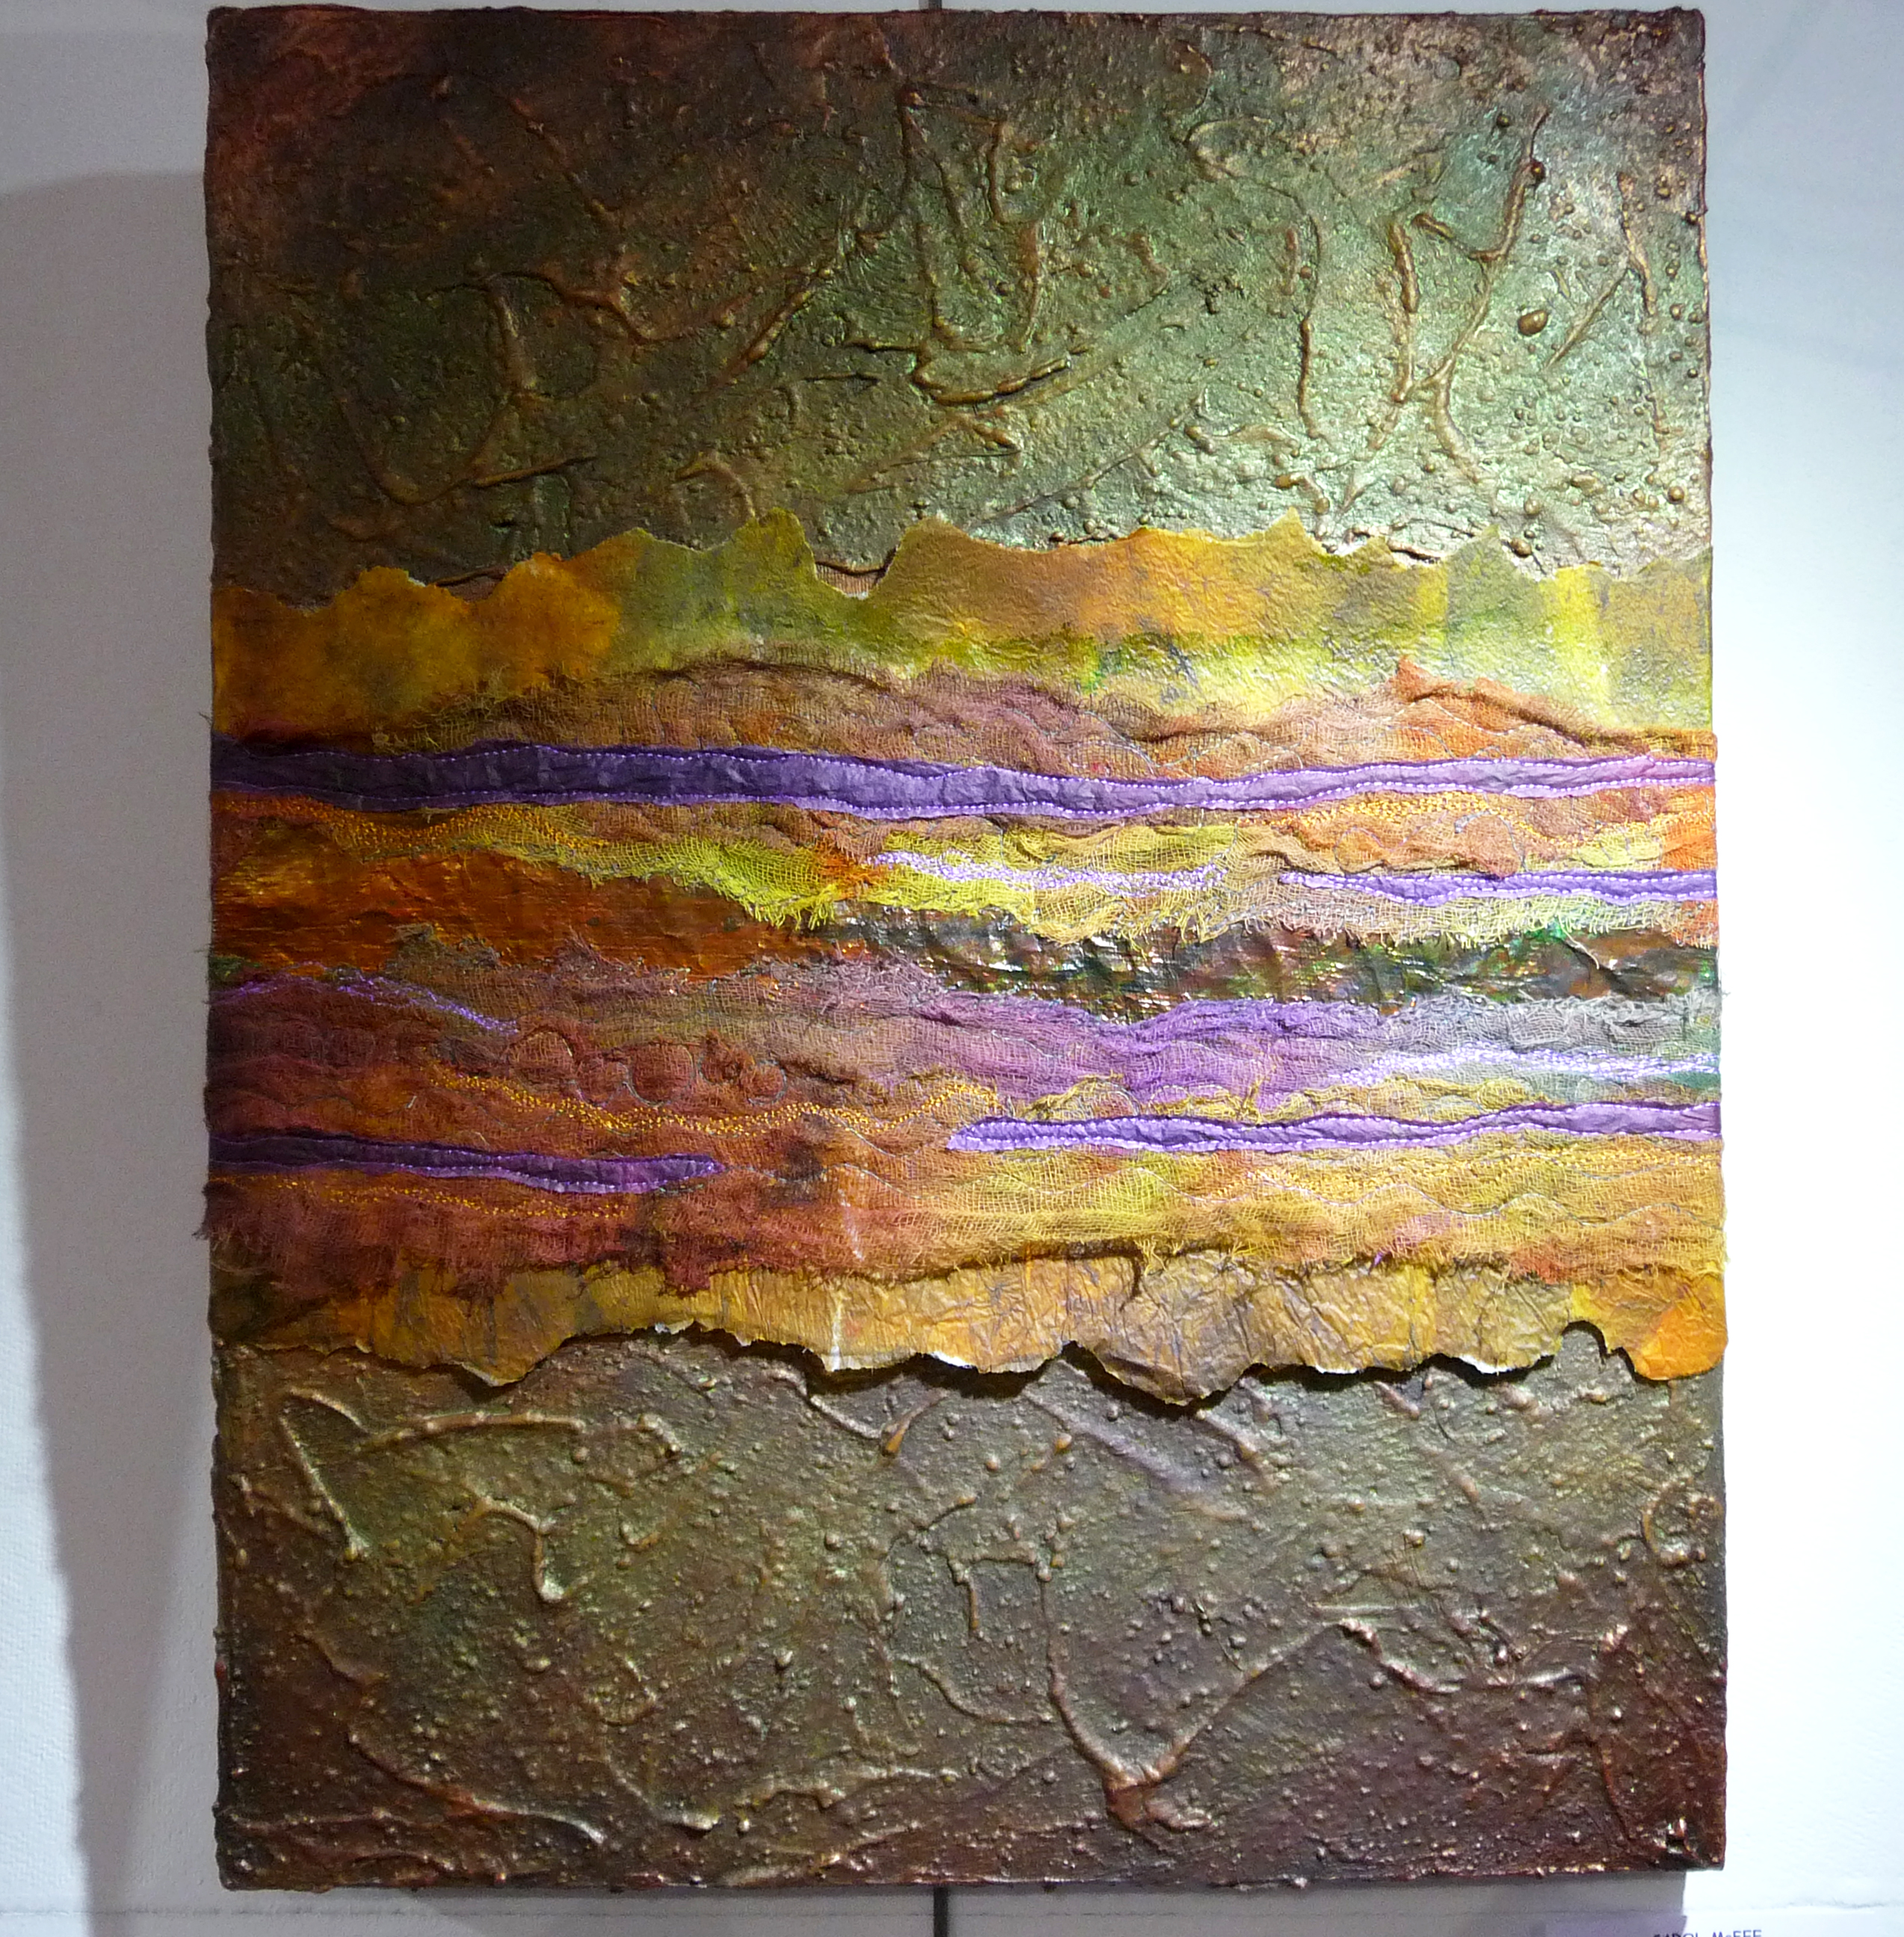 AUTUMN GLOW by Carol McFee, mixed media, lutrador, silk, foil, paper, paint and stitch